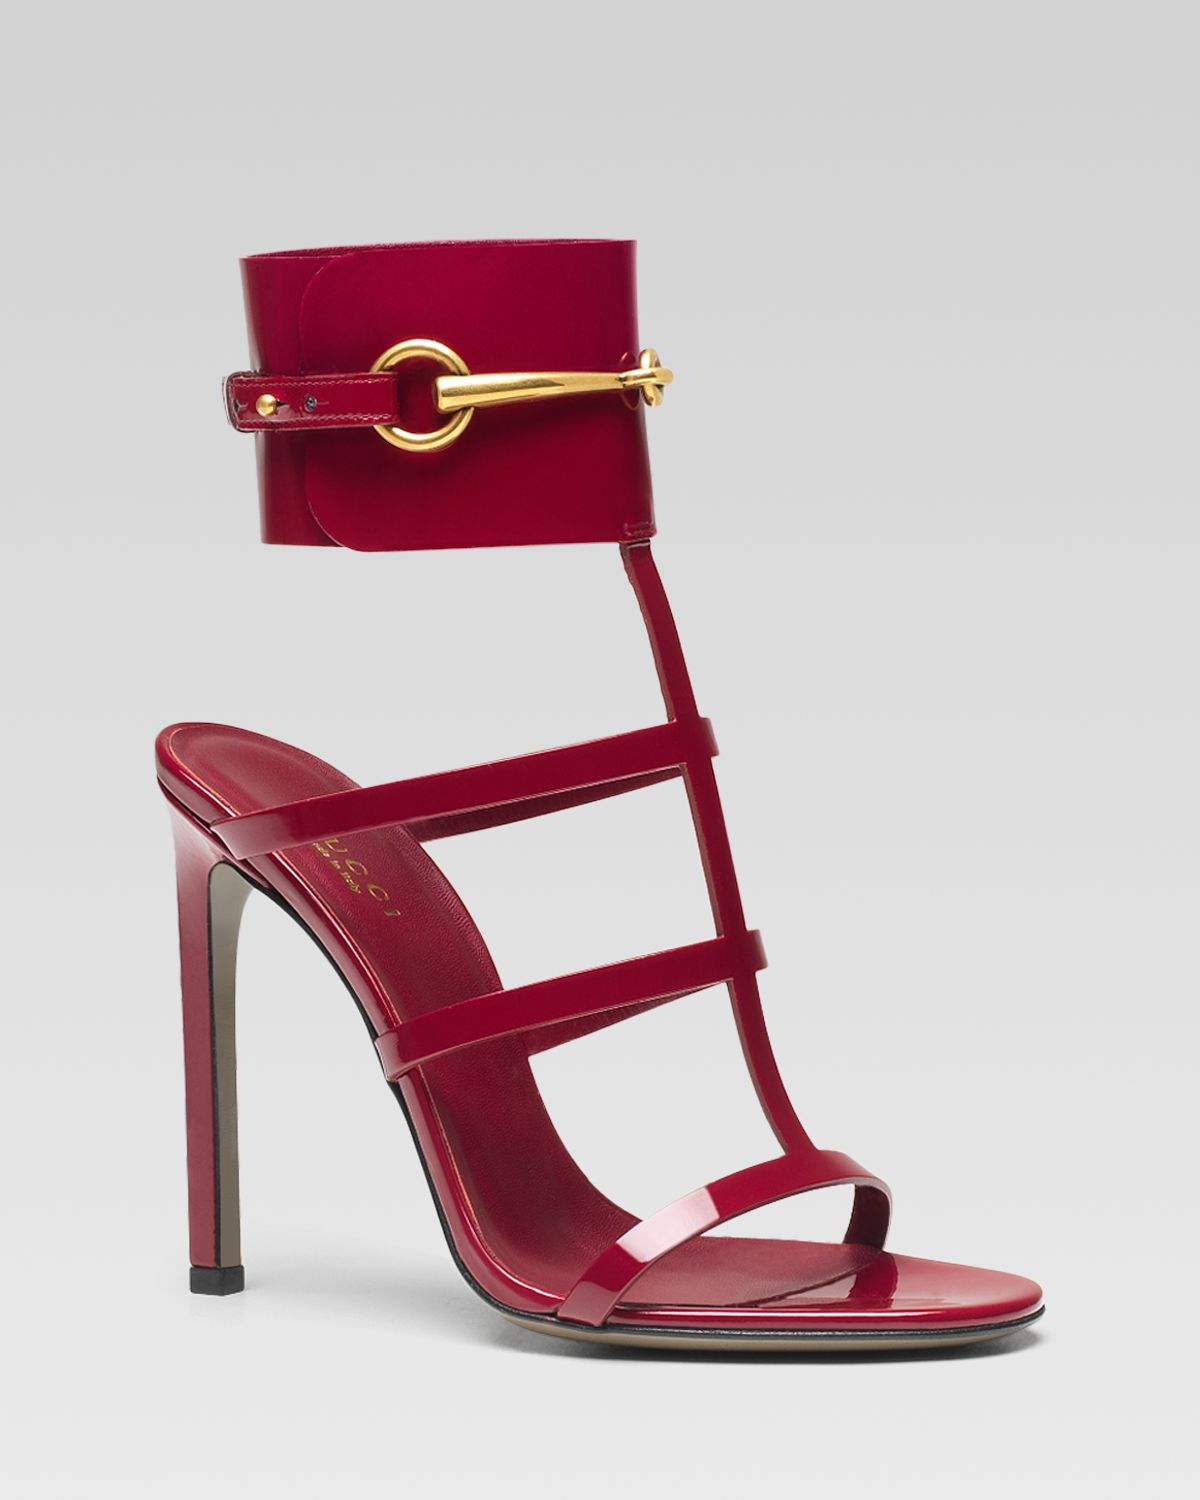 shoeniverse gucci ursula cage high heel sandal in red or black. Black Bedroom Furniture Sets. Home Design Ideas